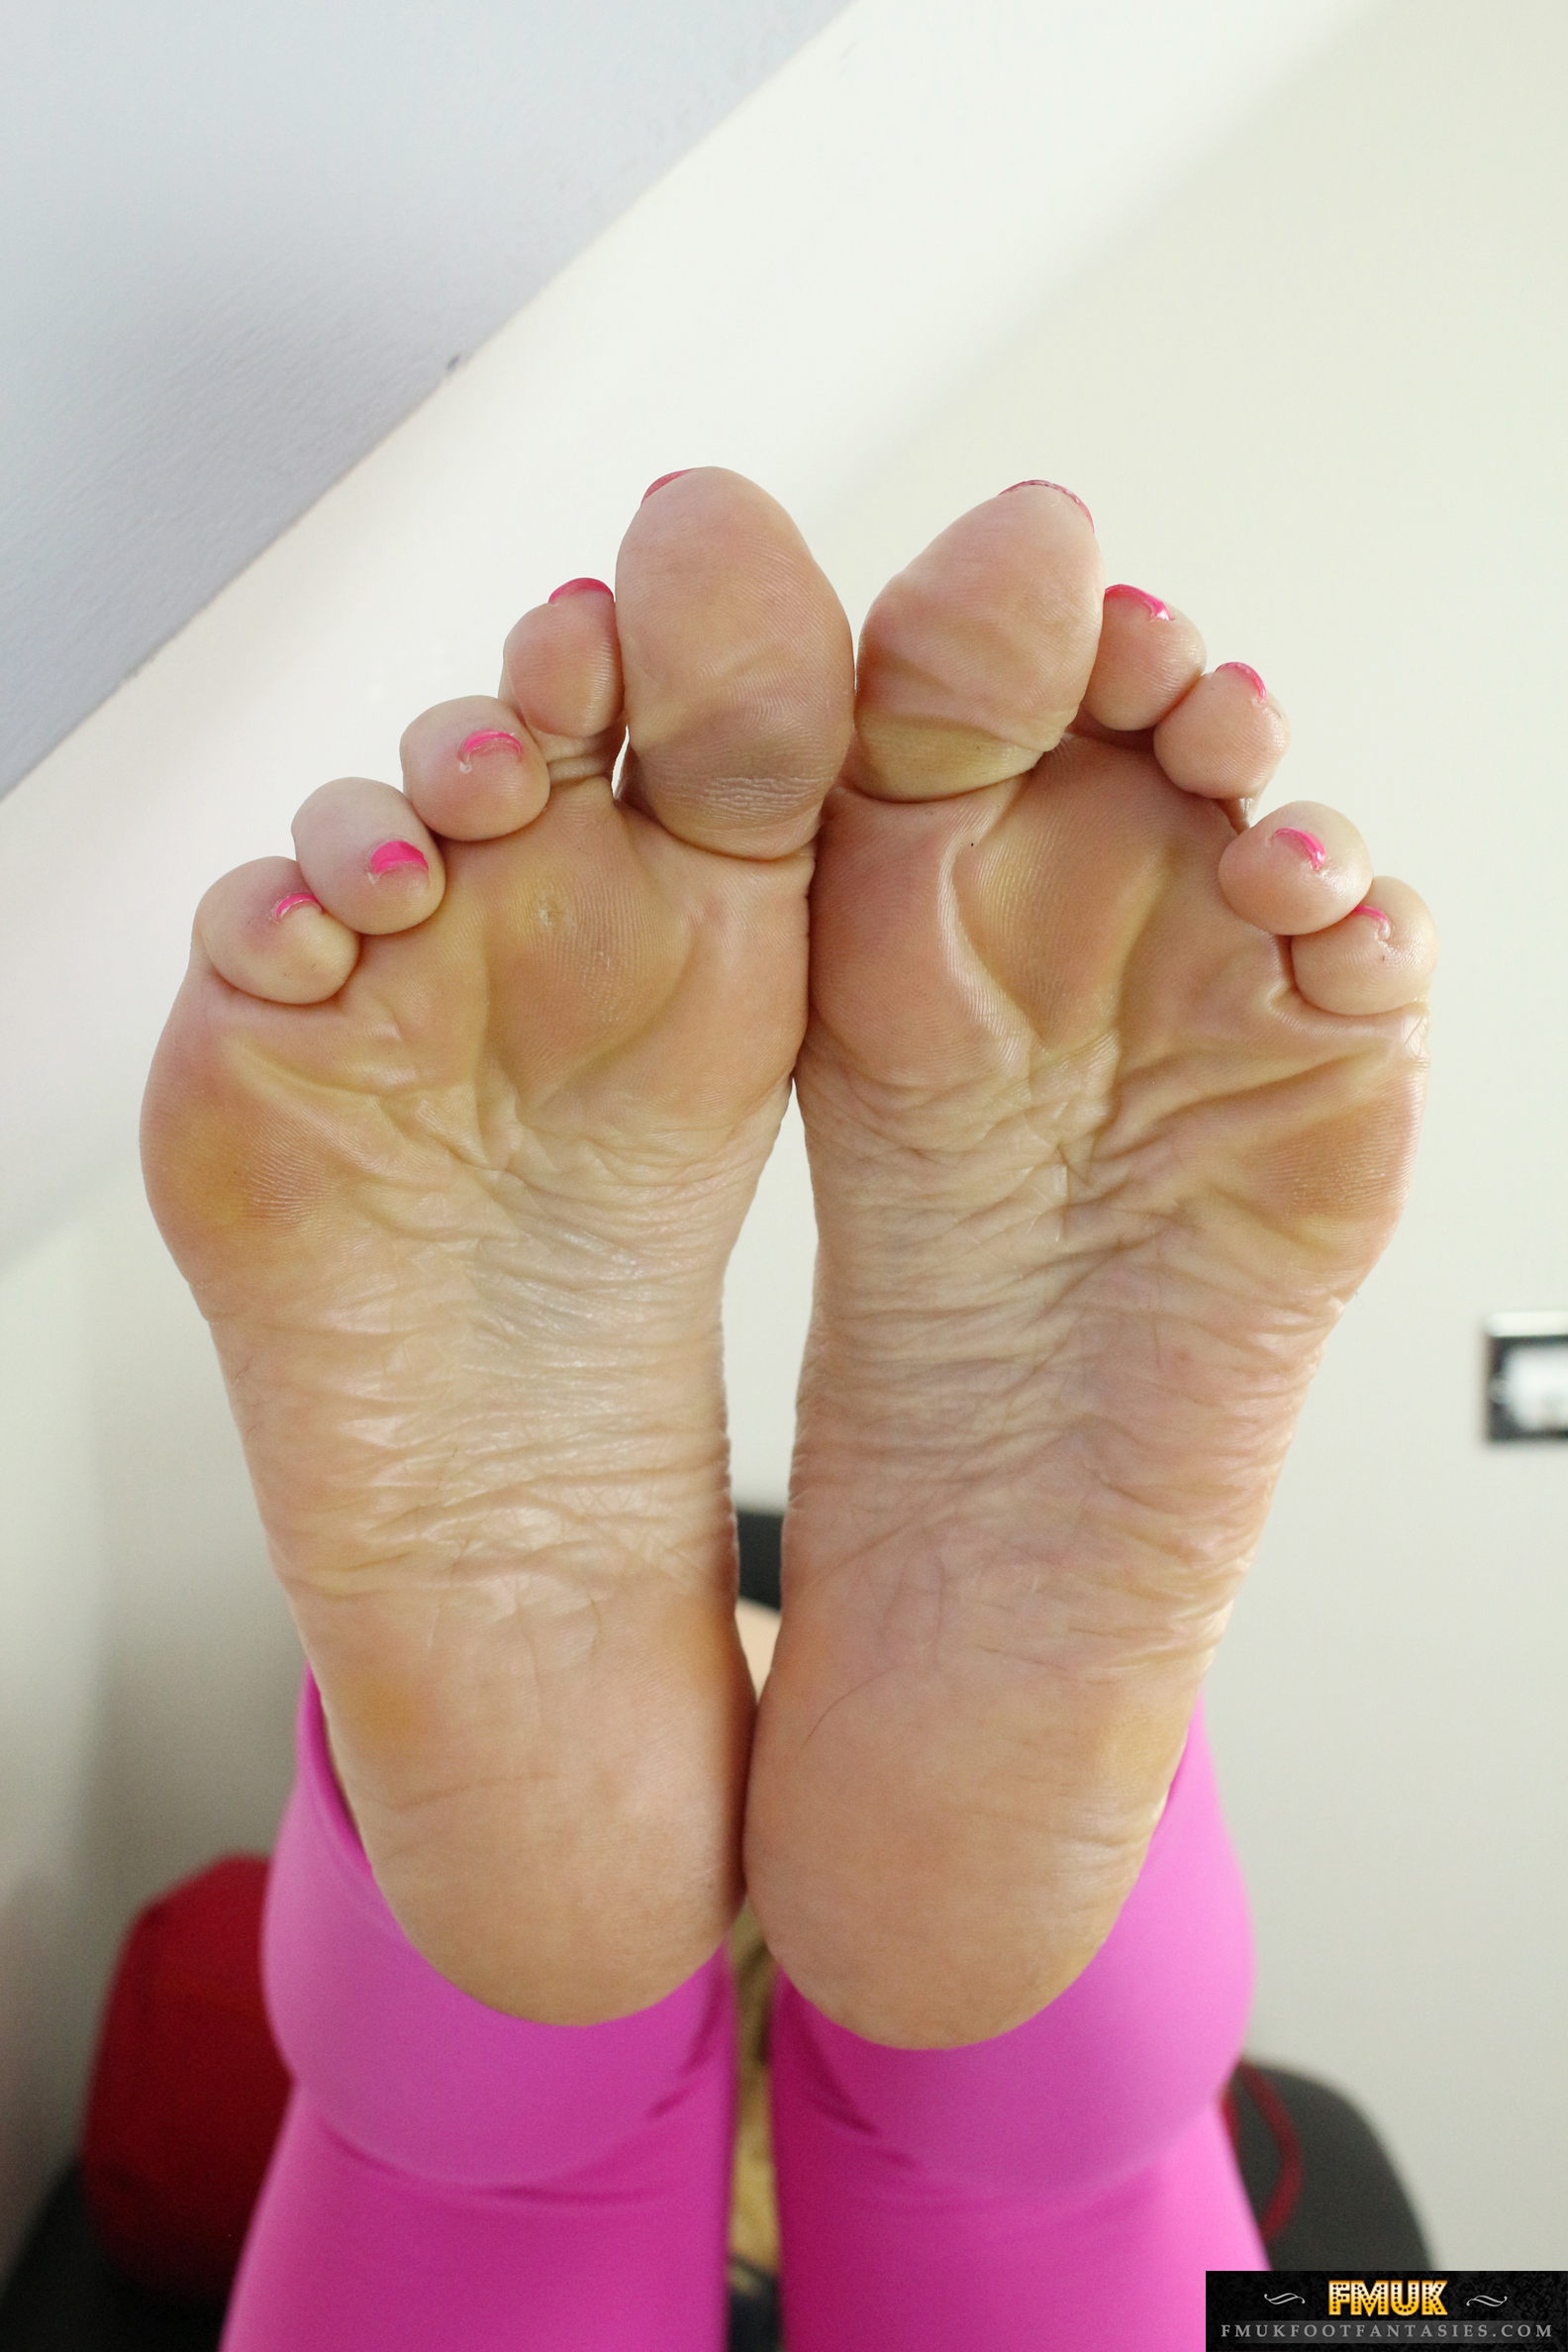 a woman named Louise showing her feet